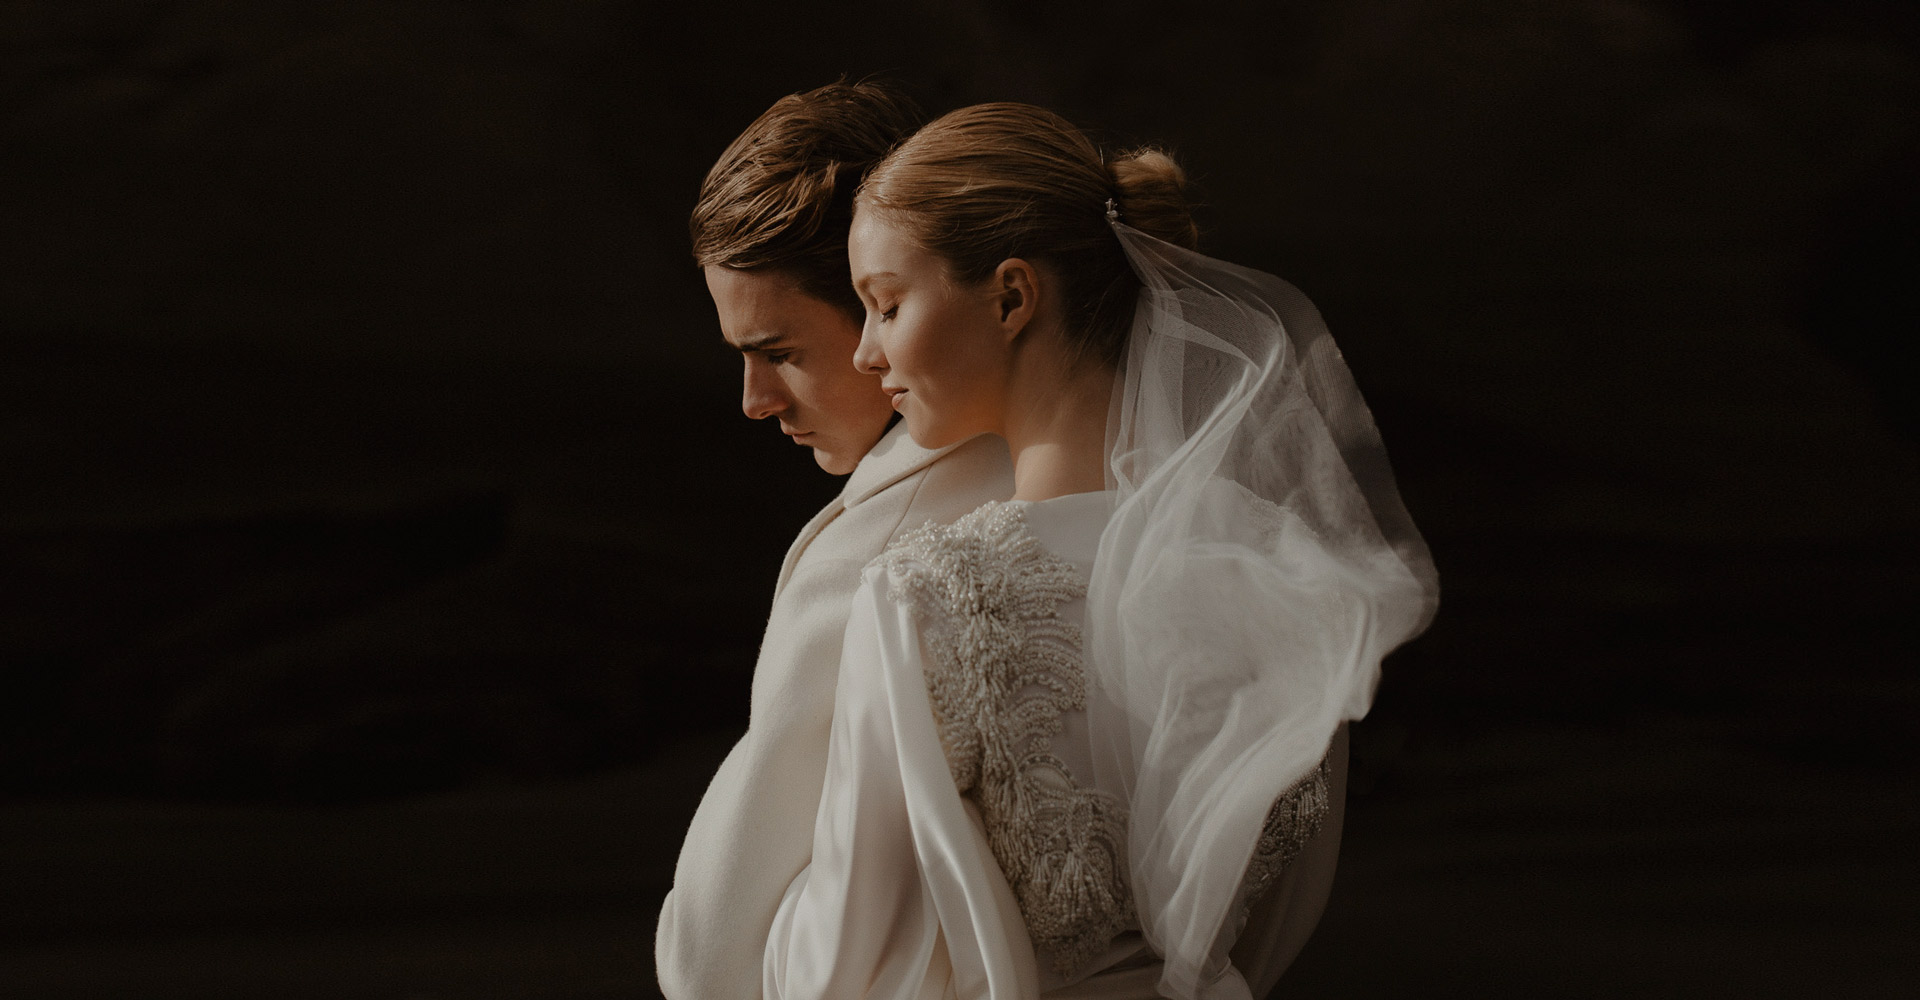 Top New Zealand Wedding Photographer